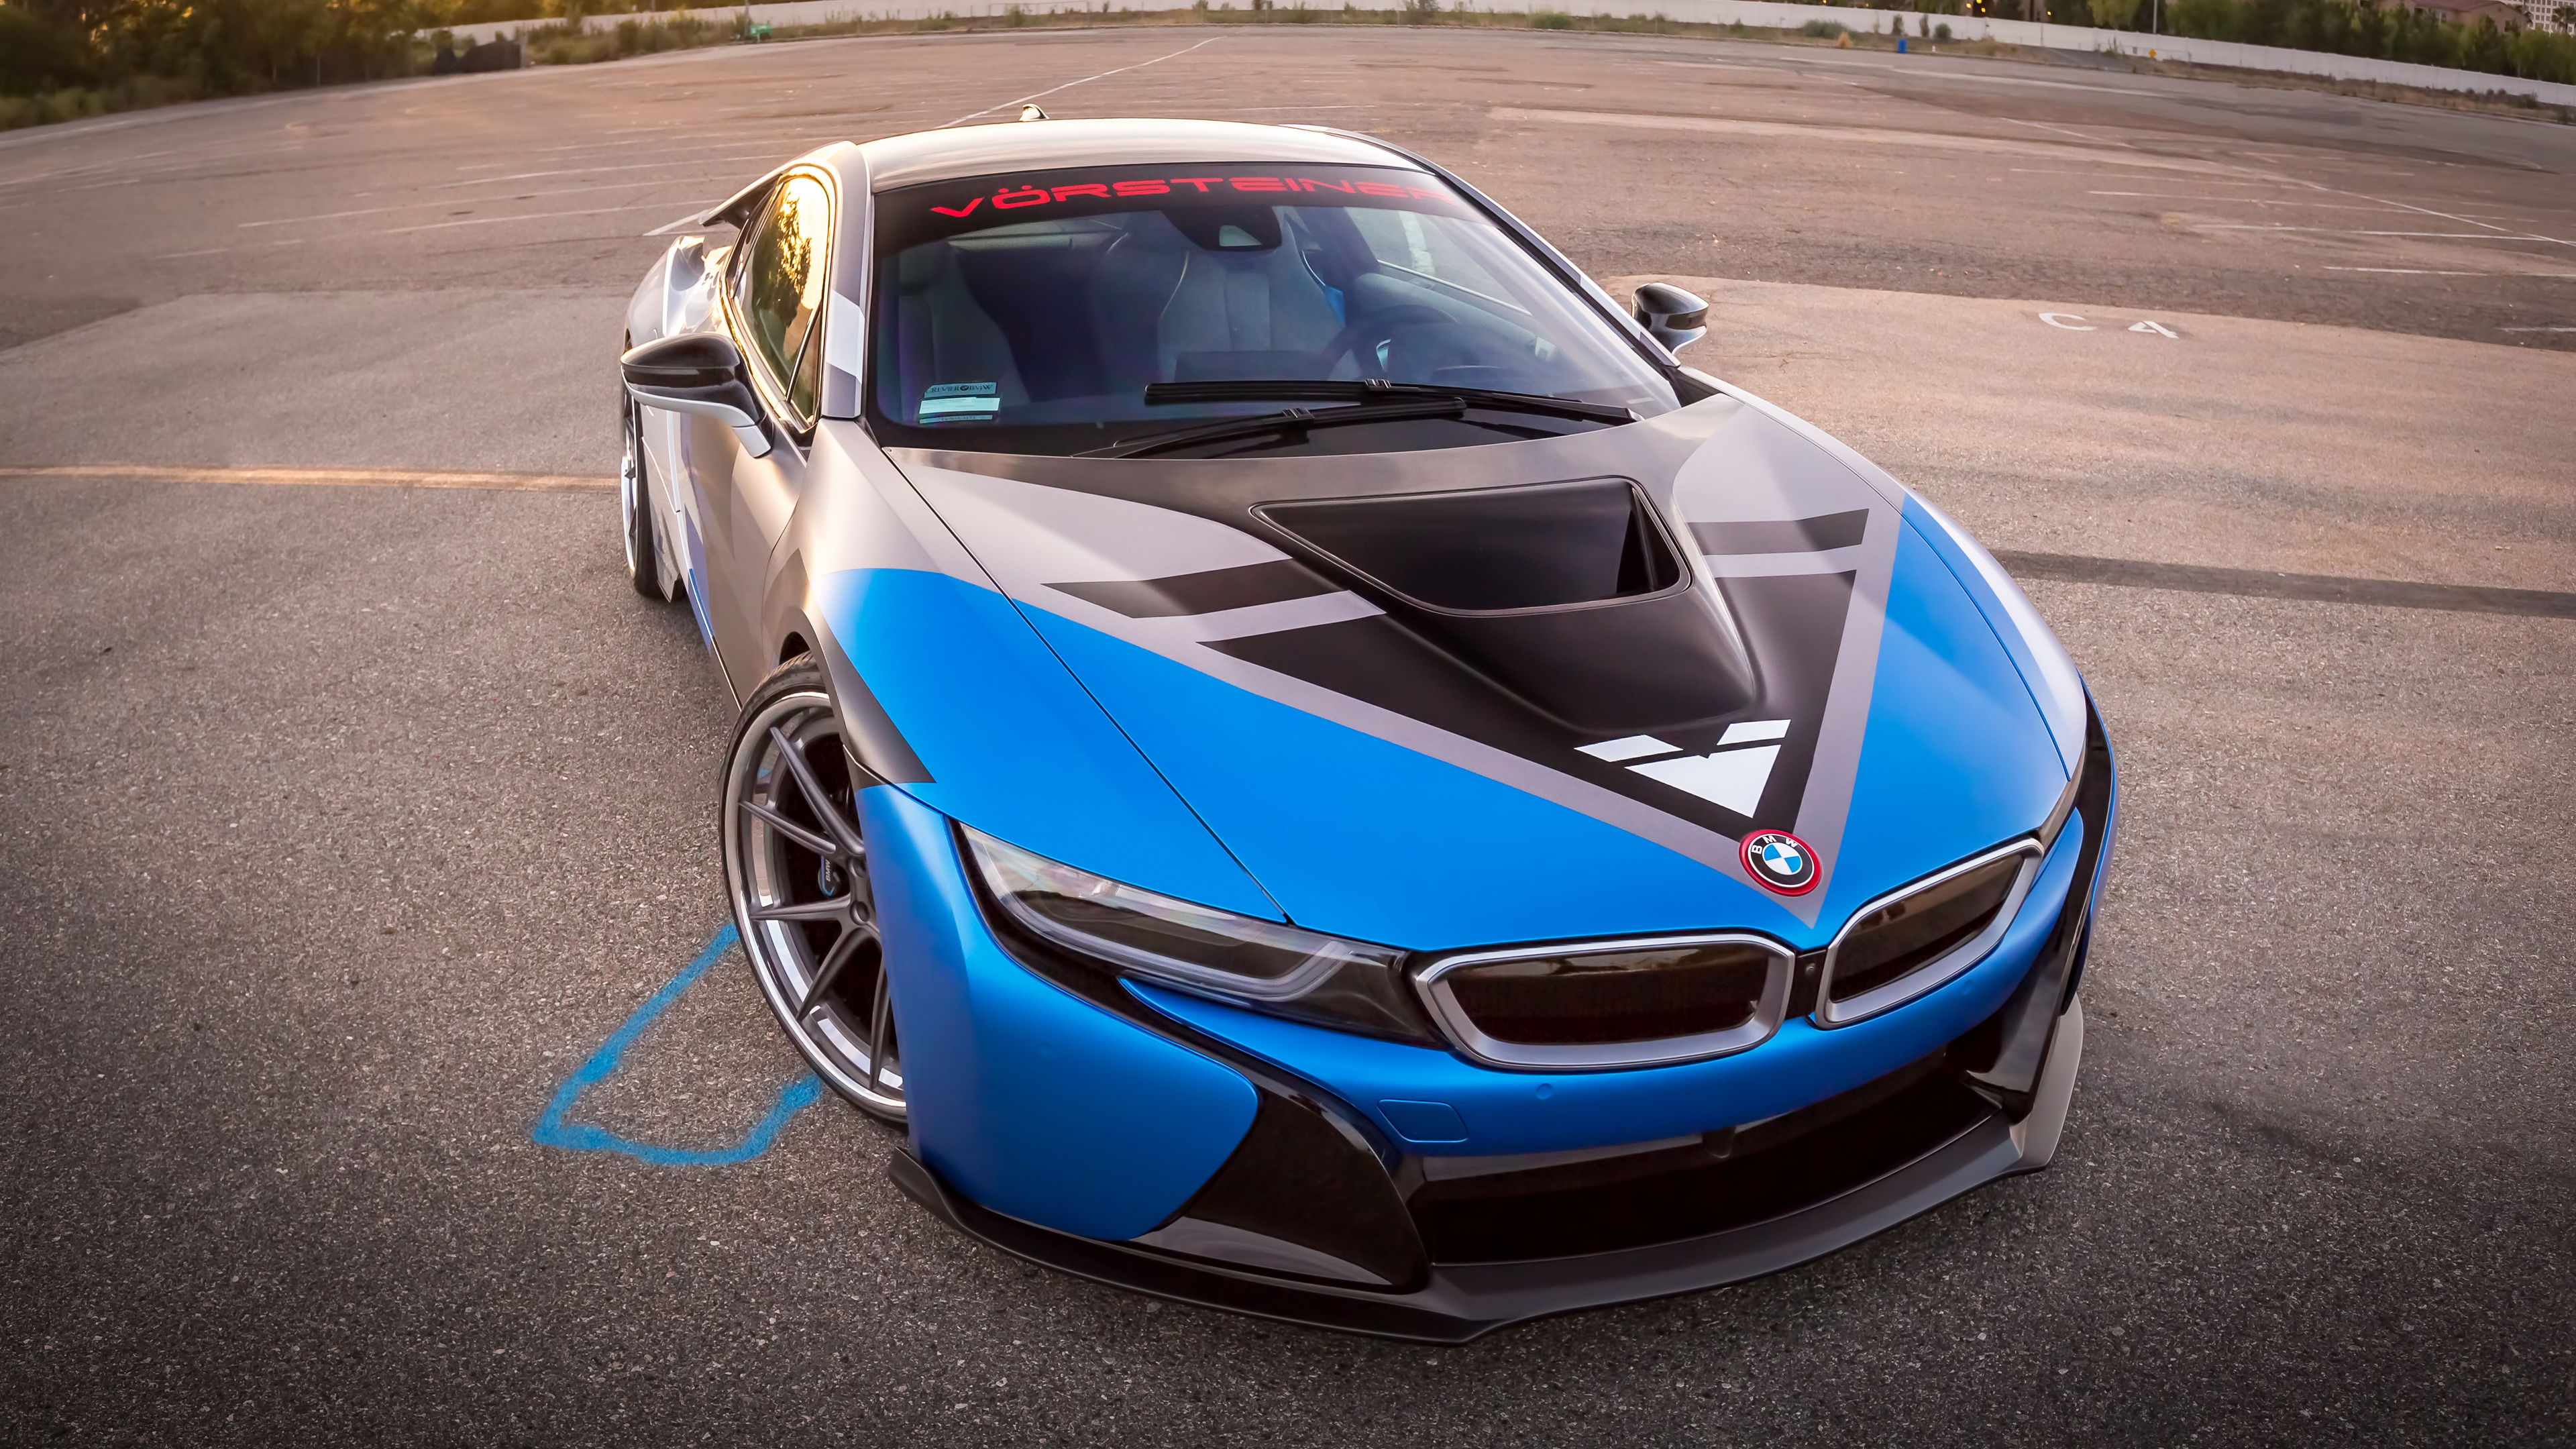 4k Vorsteiner Bmw I8 Vr E Wallpaper Hd Car Wallpapers Id 6545